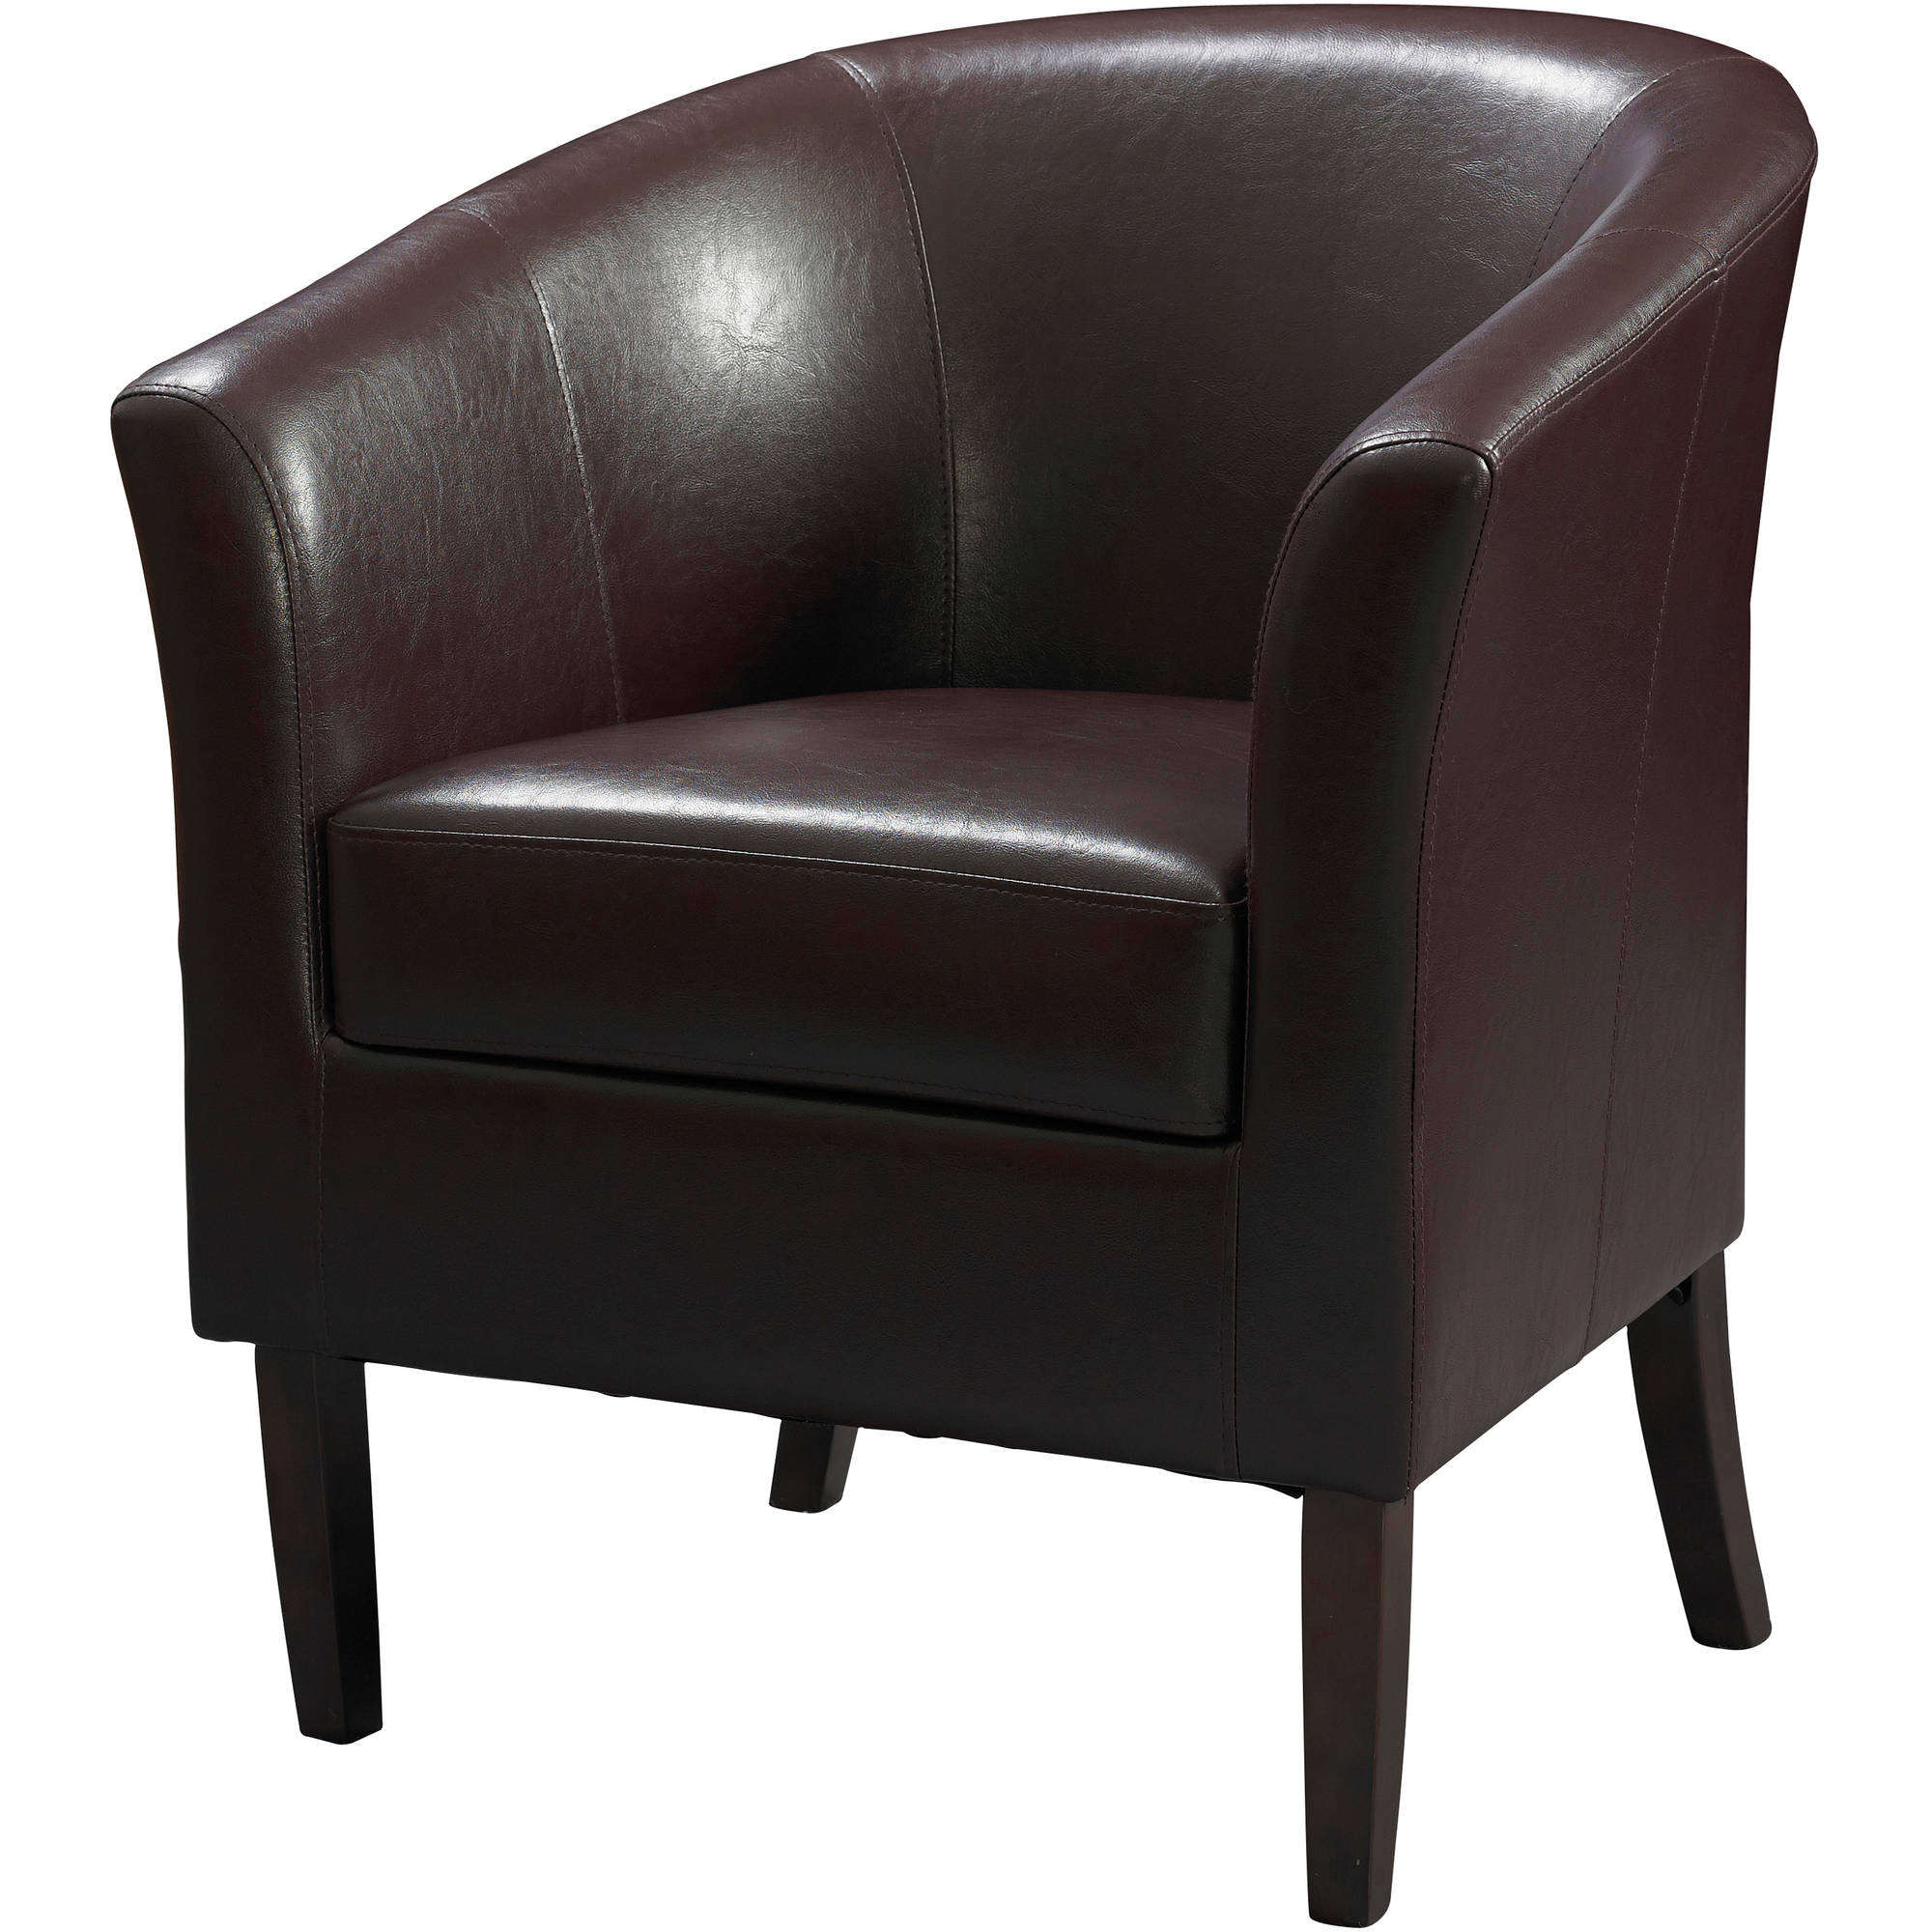 Linon Simon Club Chair Blackberry 19 5 inch Seat Height